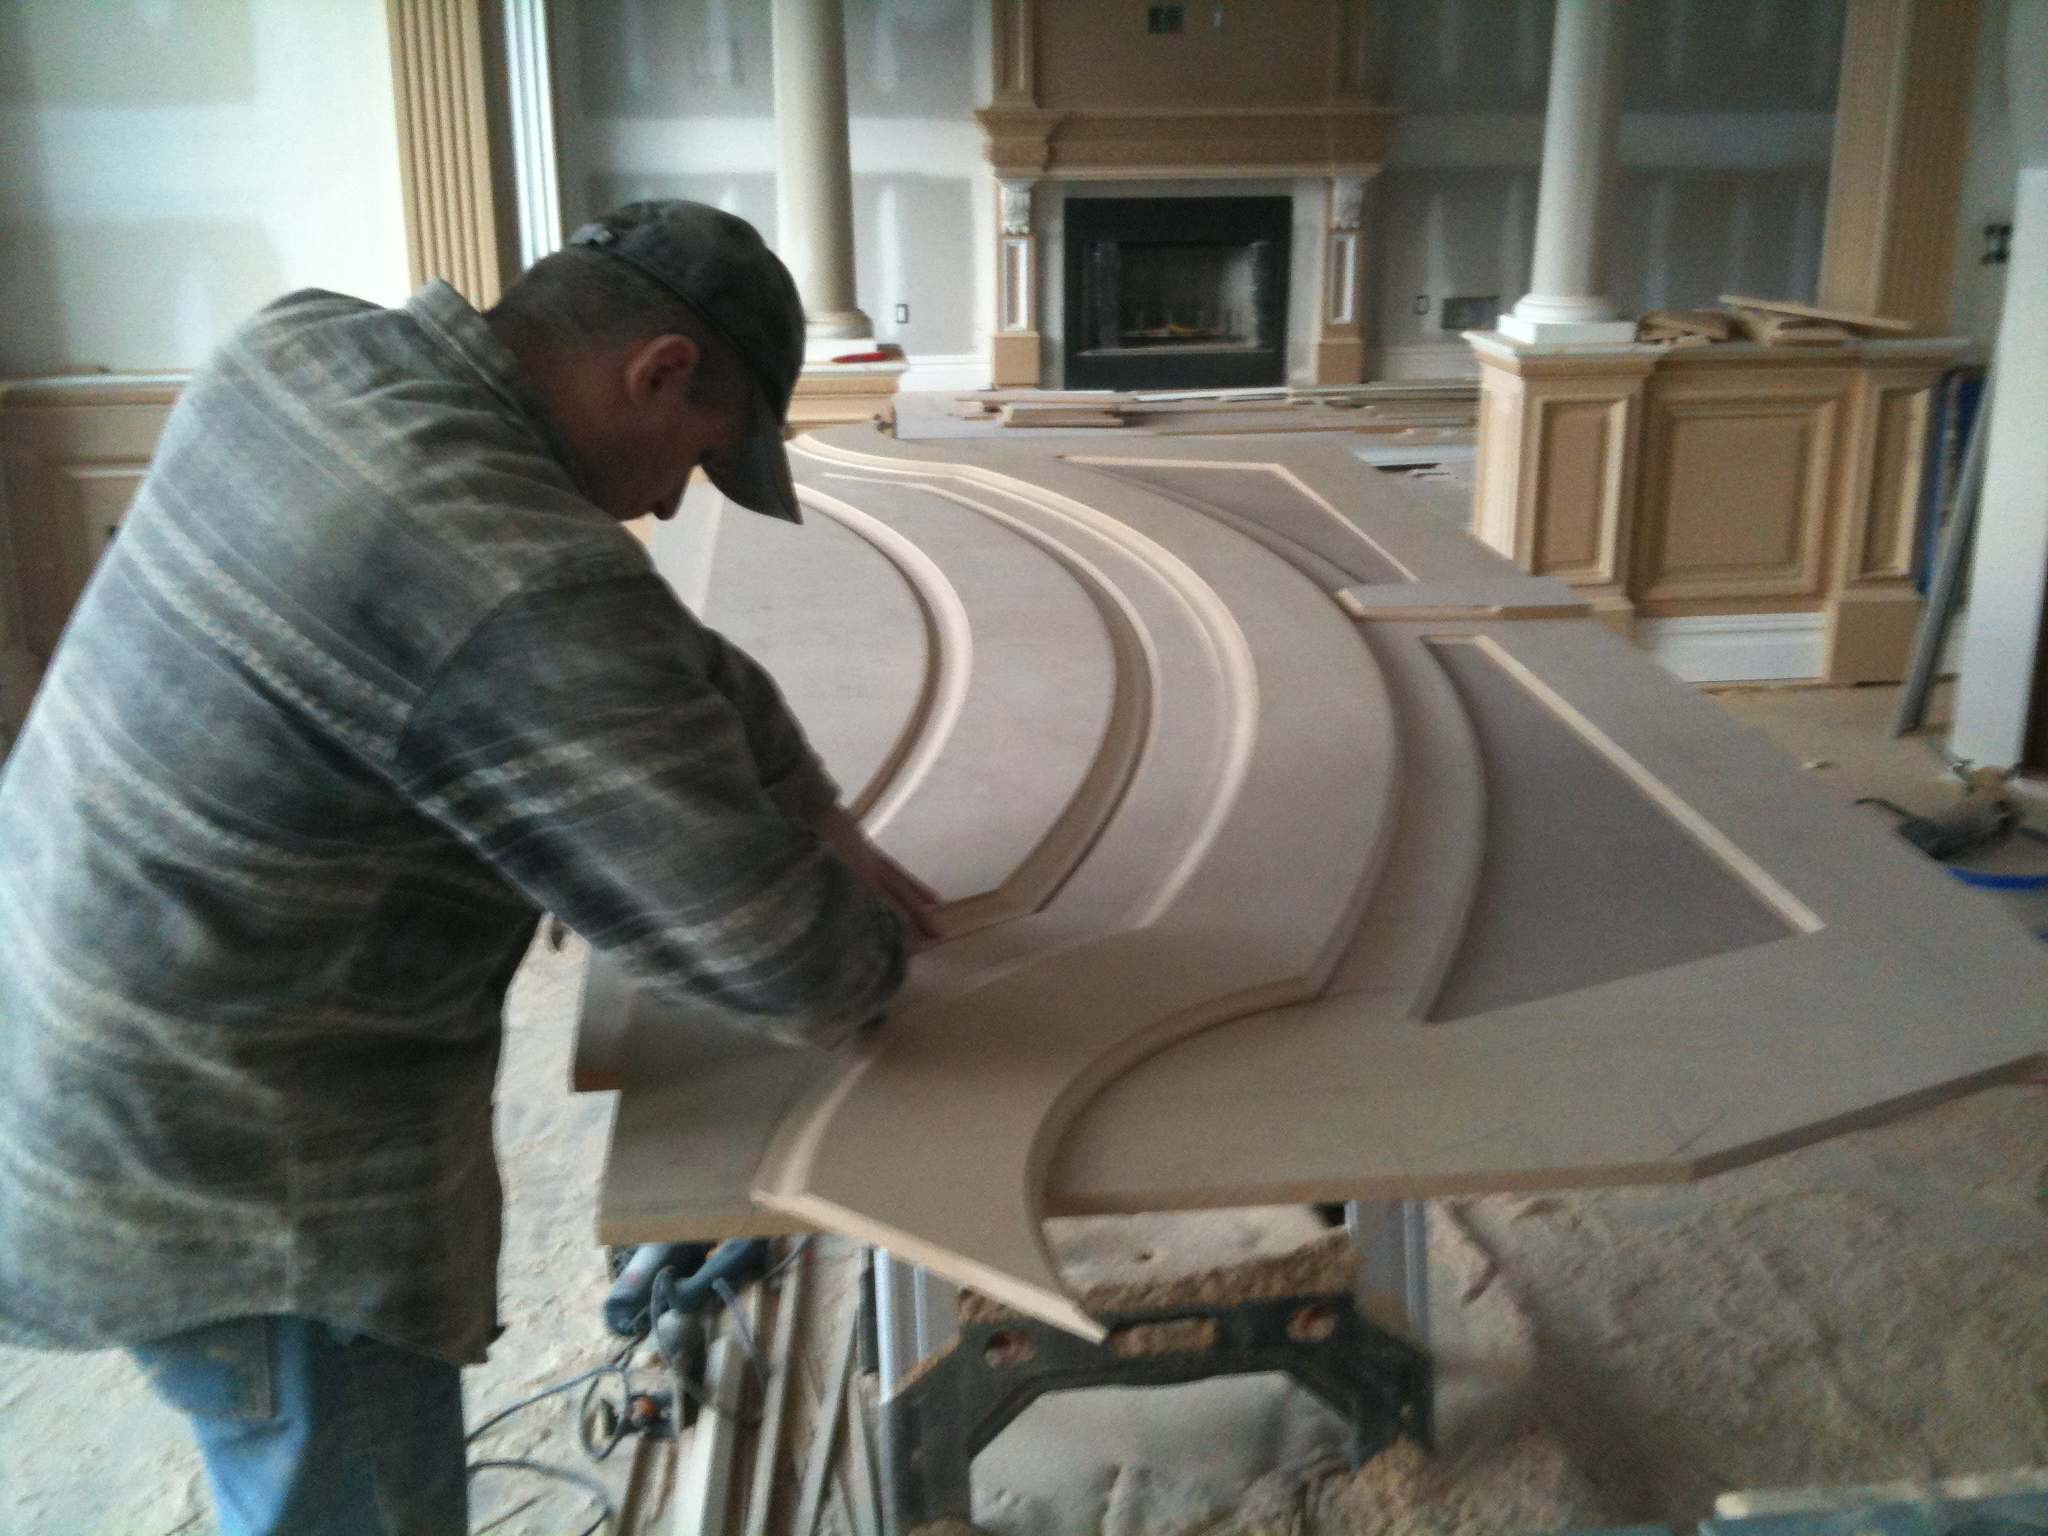 trim work during construction